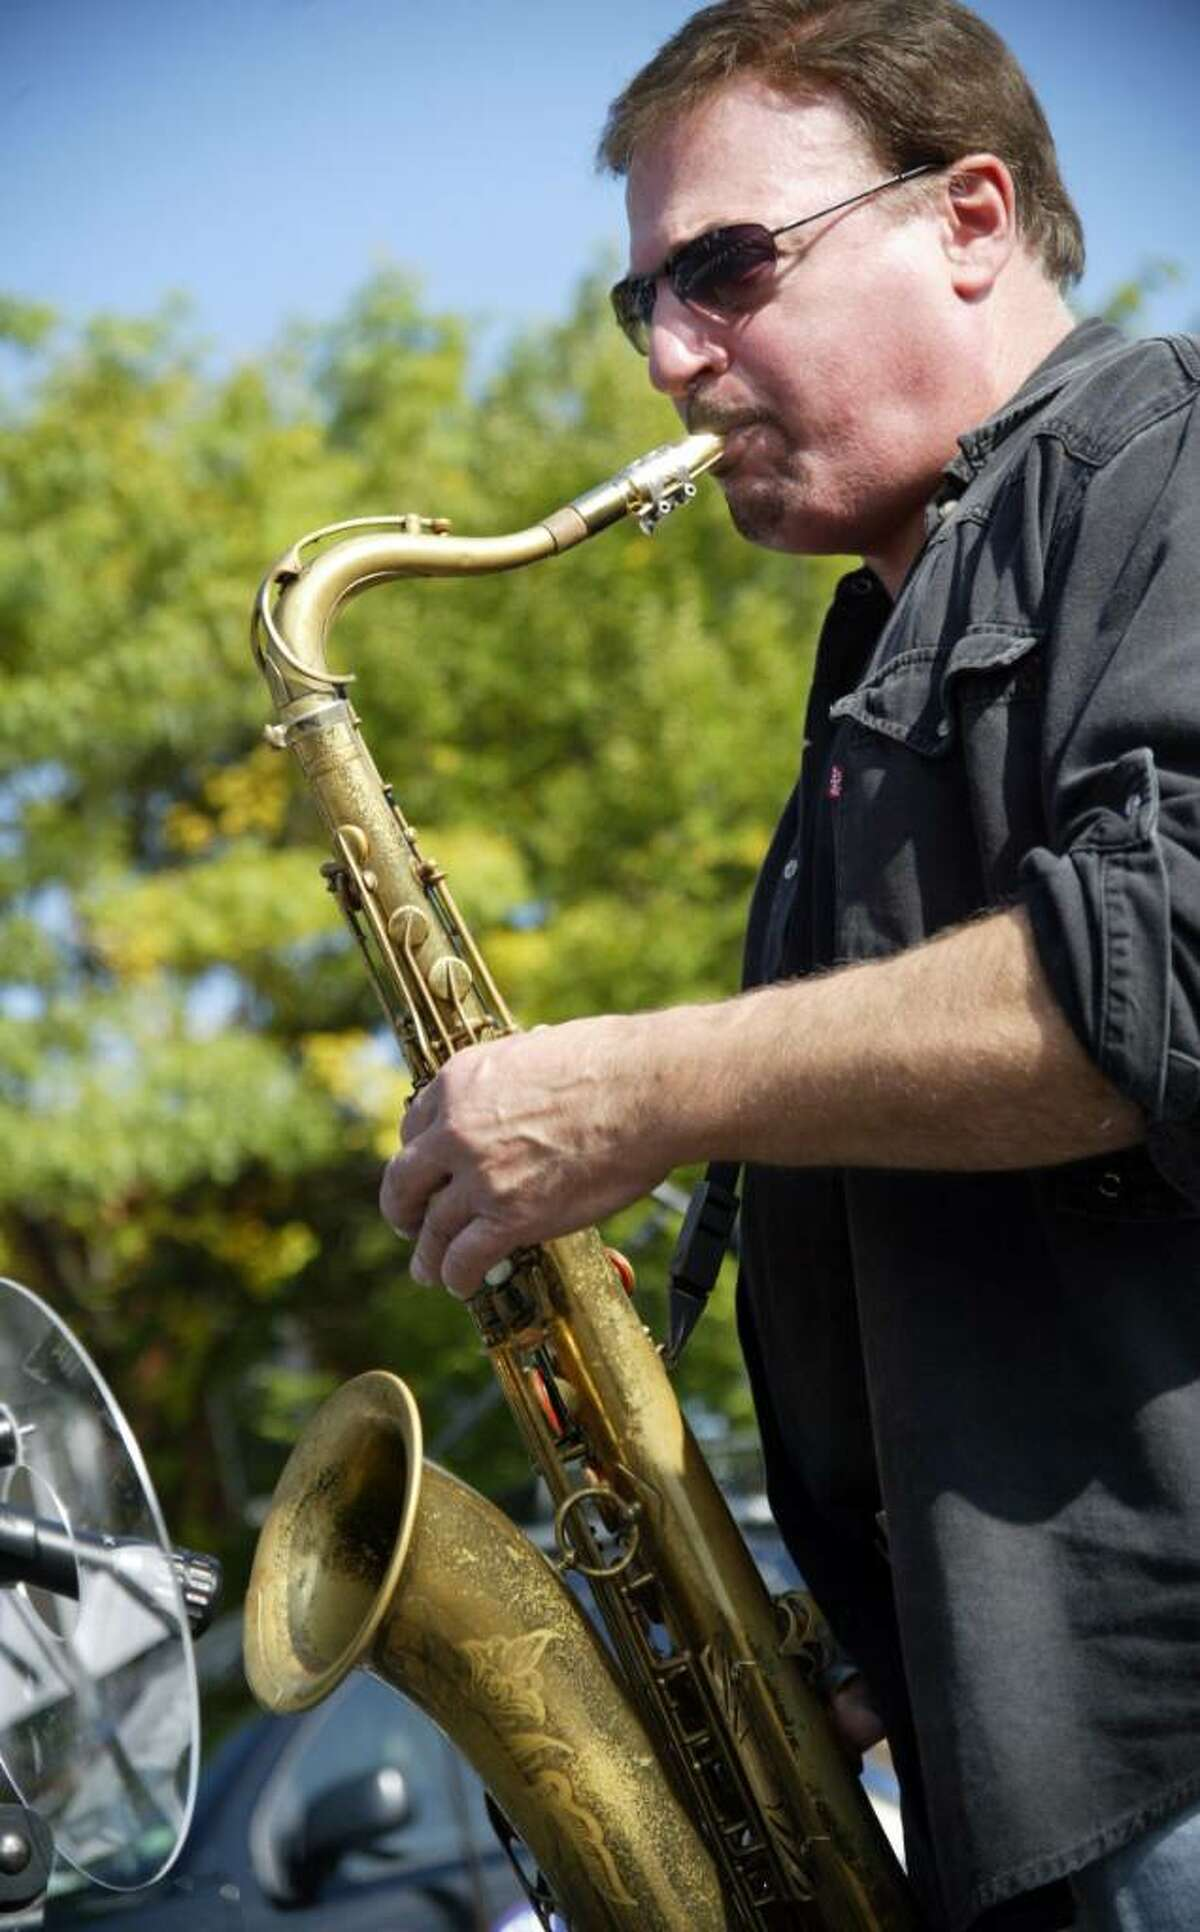 John Serio of Fairfield, belts out sax music, while playing with The Big Beat Band during the annual Shelton Festivities on Howe Avenue, Sunday, Oct. 4, 2009.